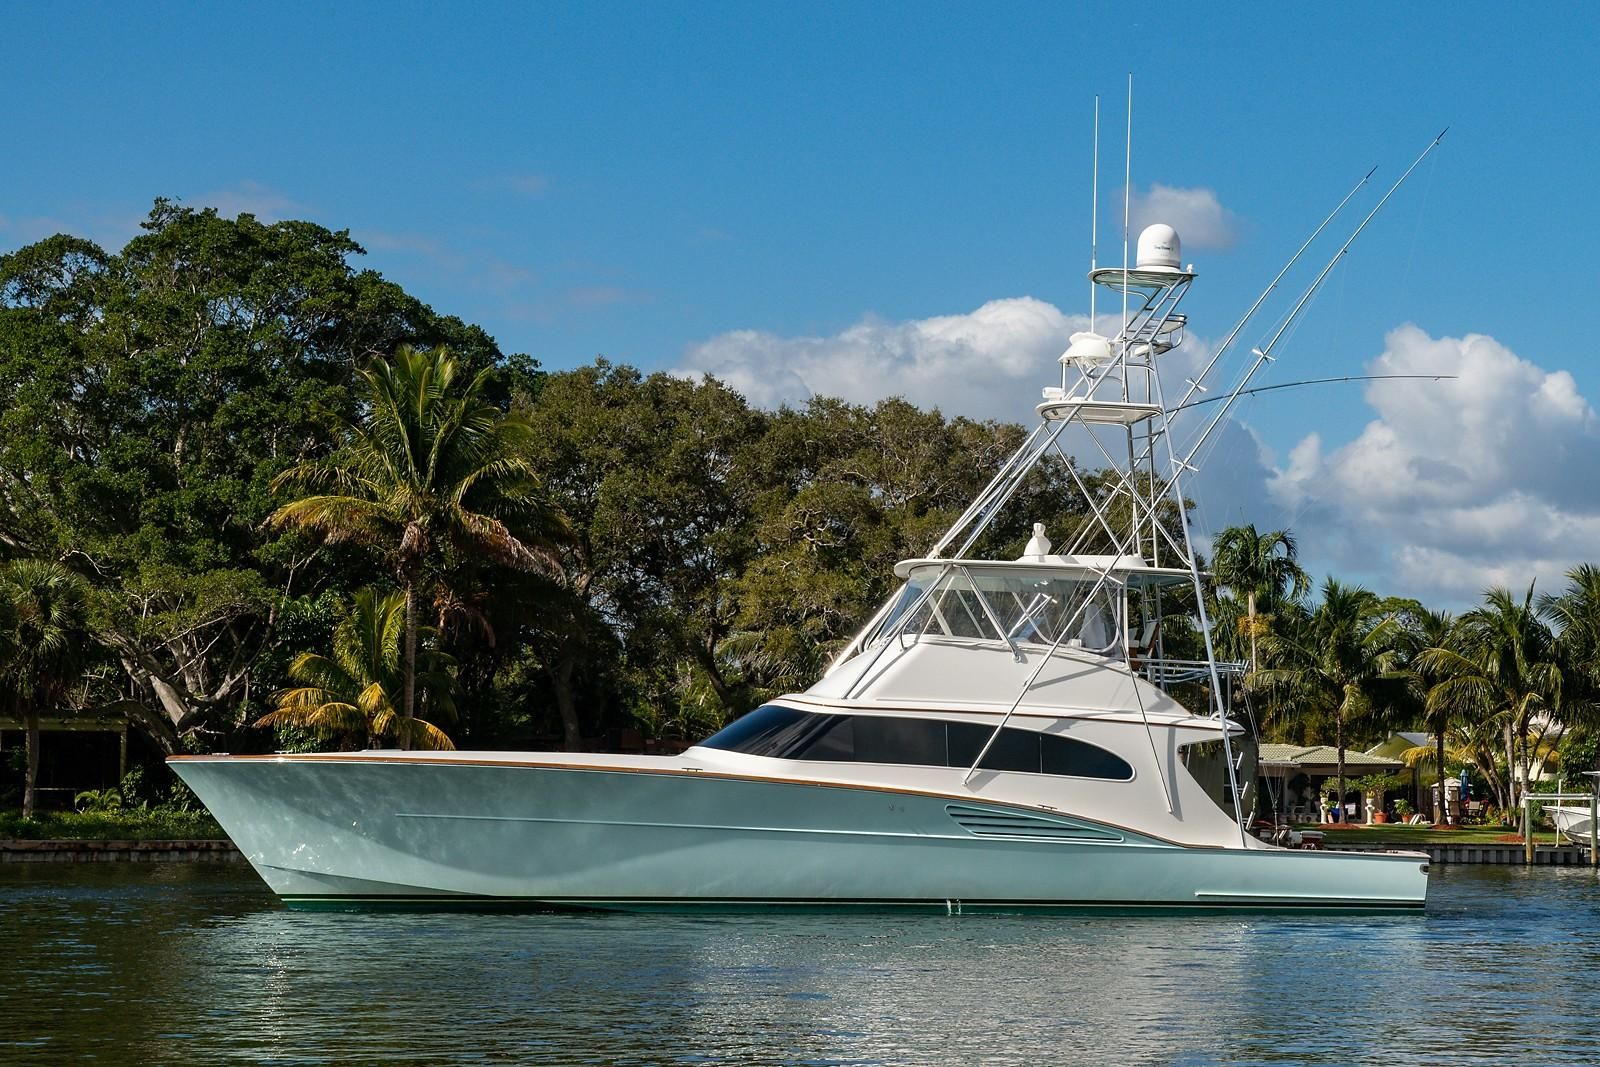 2009 Garlington Sportfish Power Boat For Sale Www